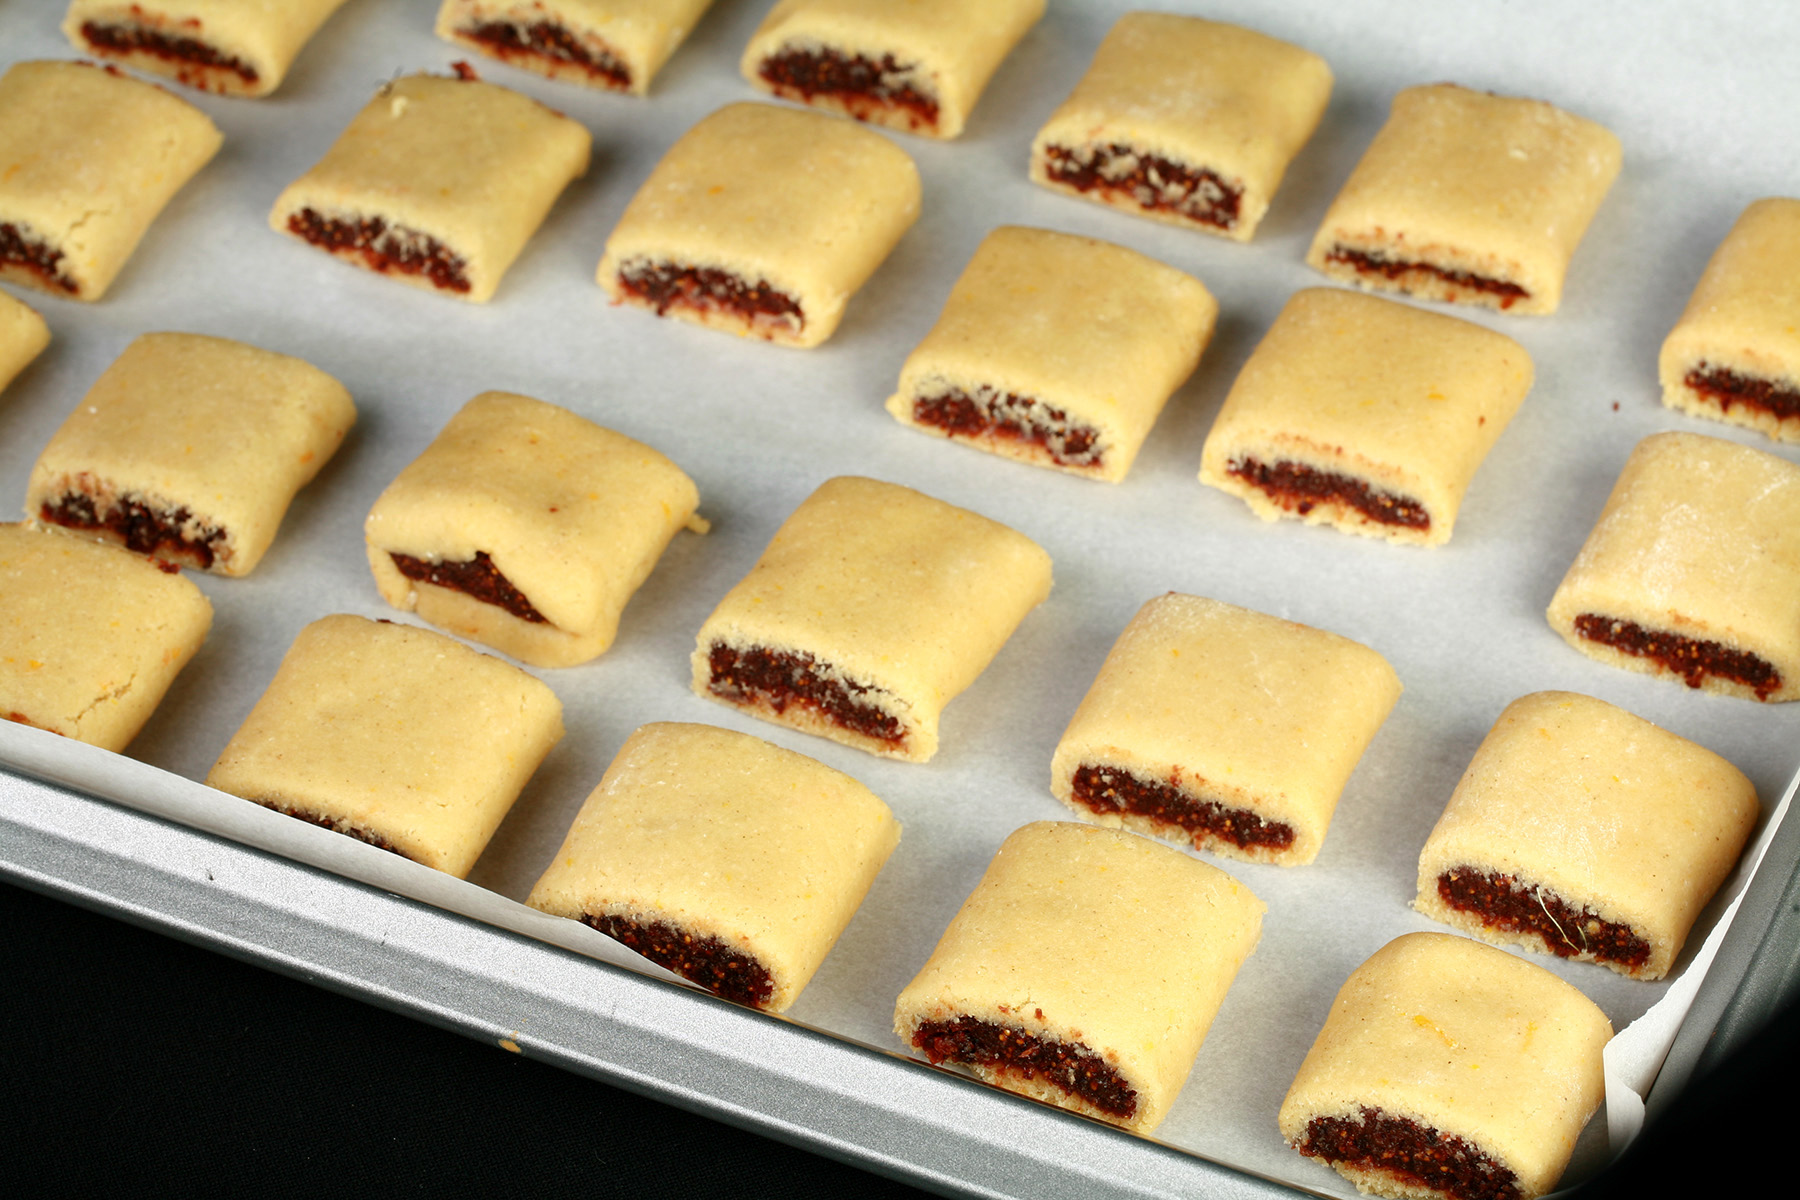 Rows of raw fig newton cookies, lined up on a parchment lined baking sheet.